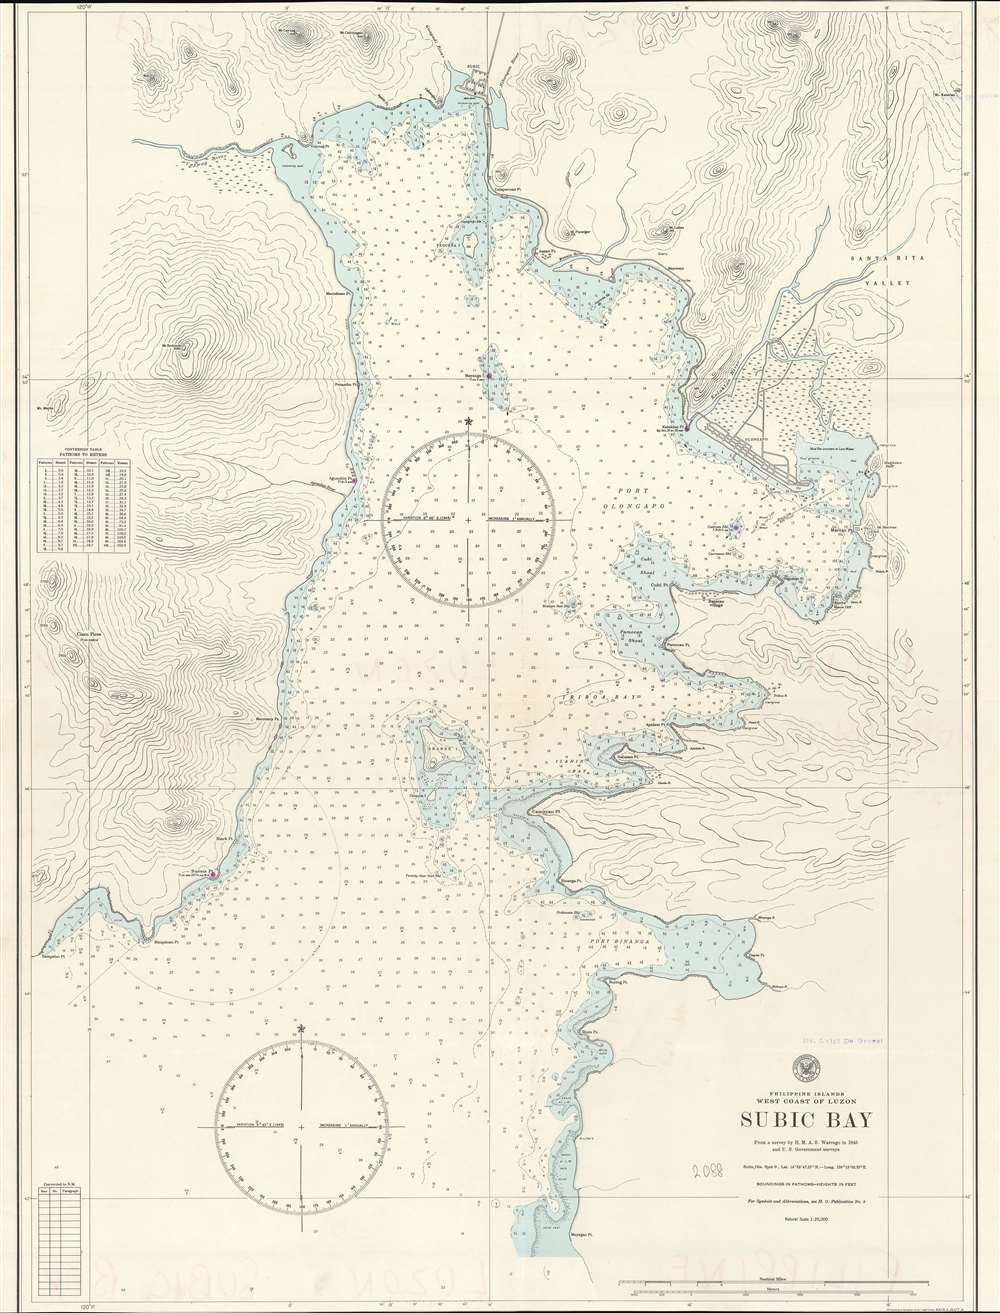 1945 U.S. Hydrographic Office Nautical Chart of Subic Bay, Luzon, Philippines